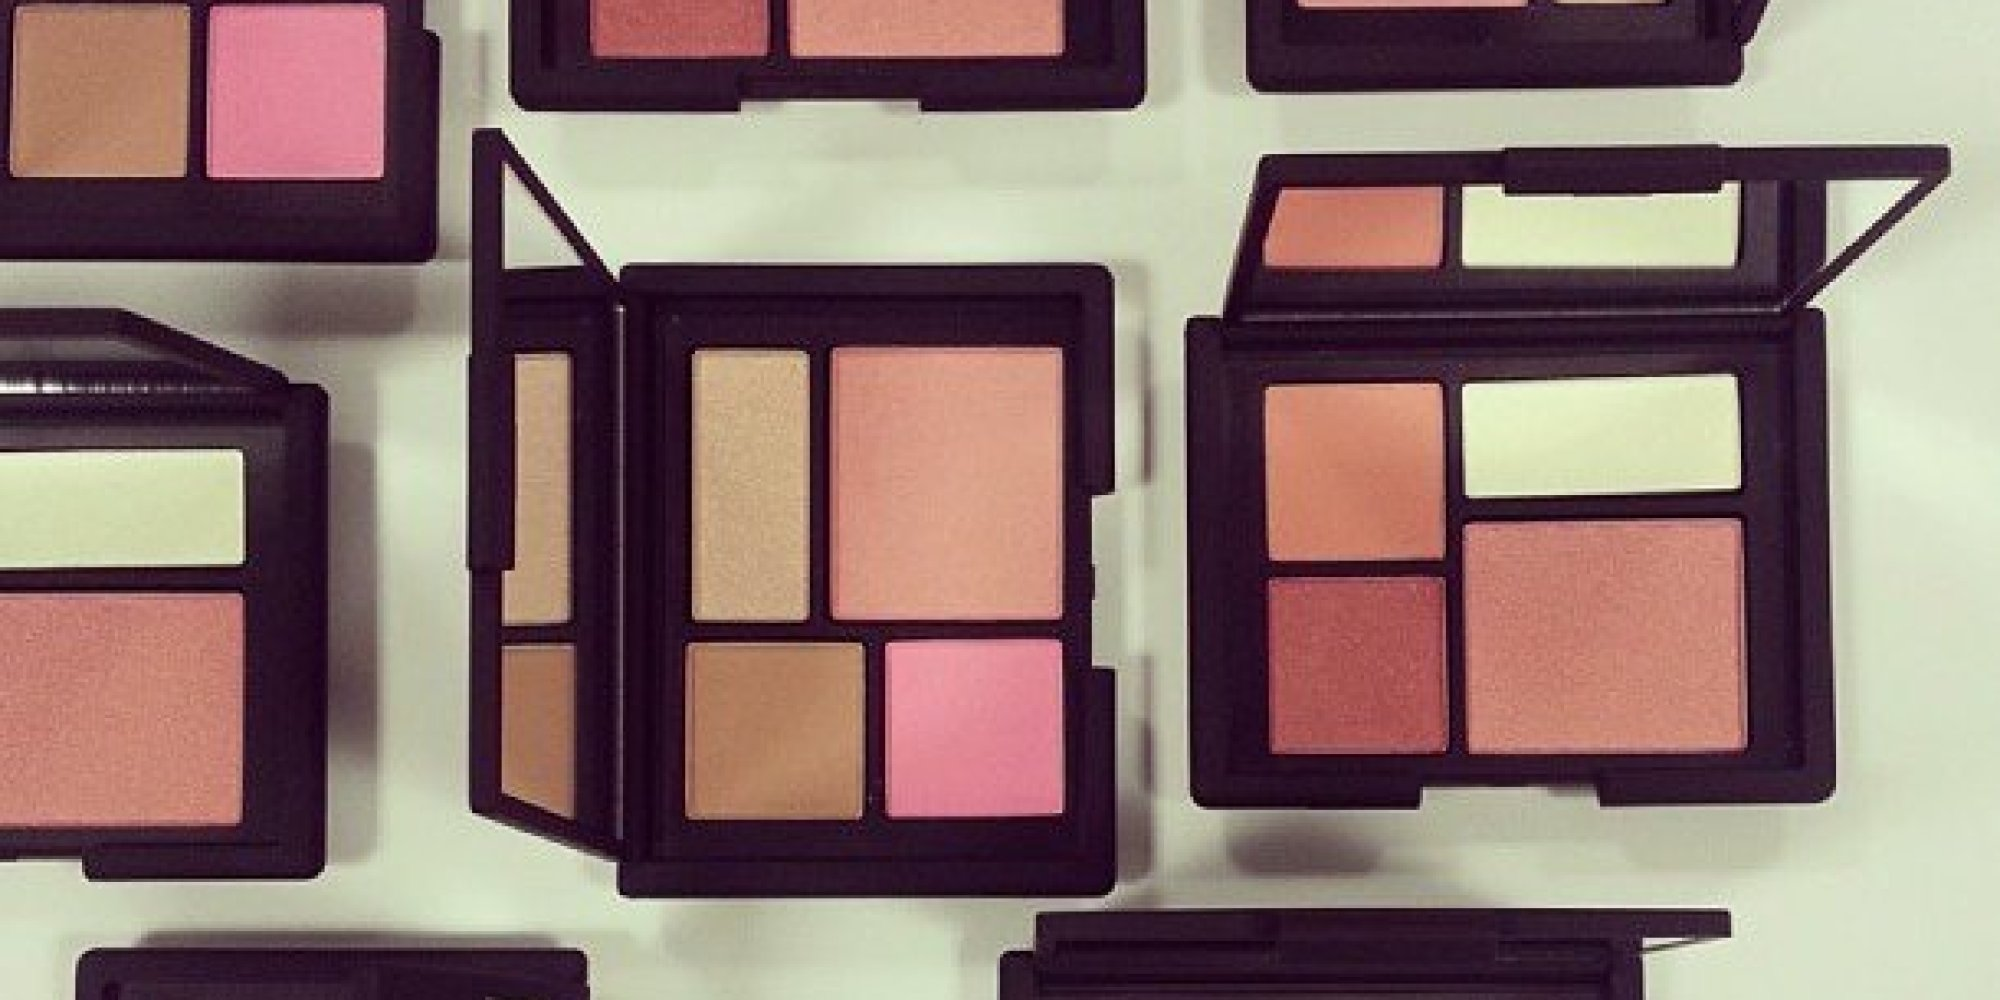 Nars' Guy Bourdin Collection To Debut On Snapchat